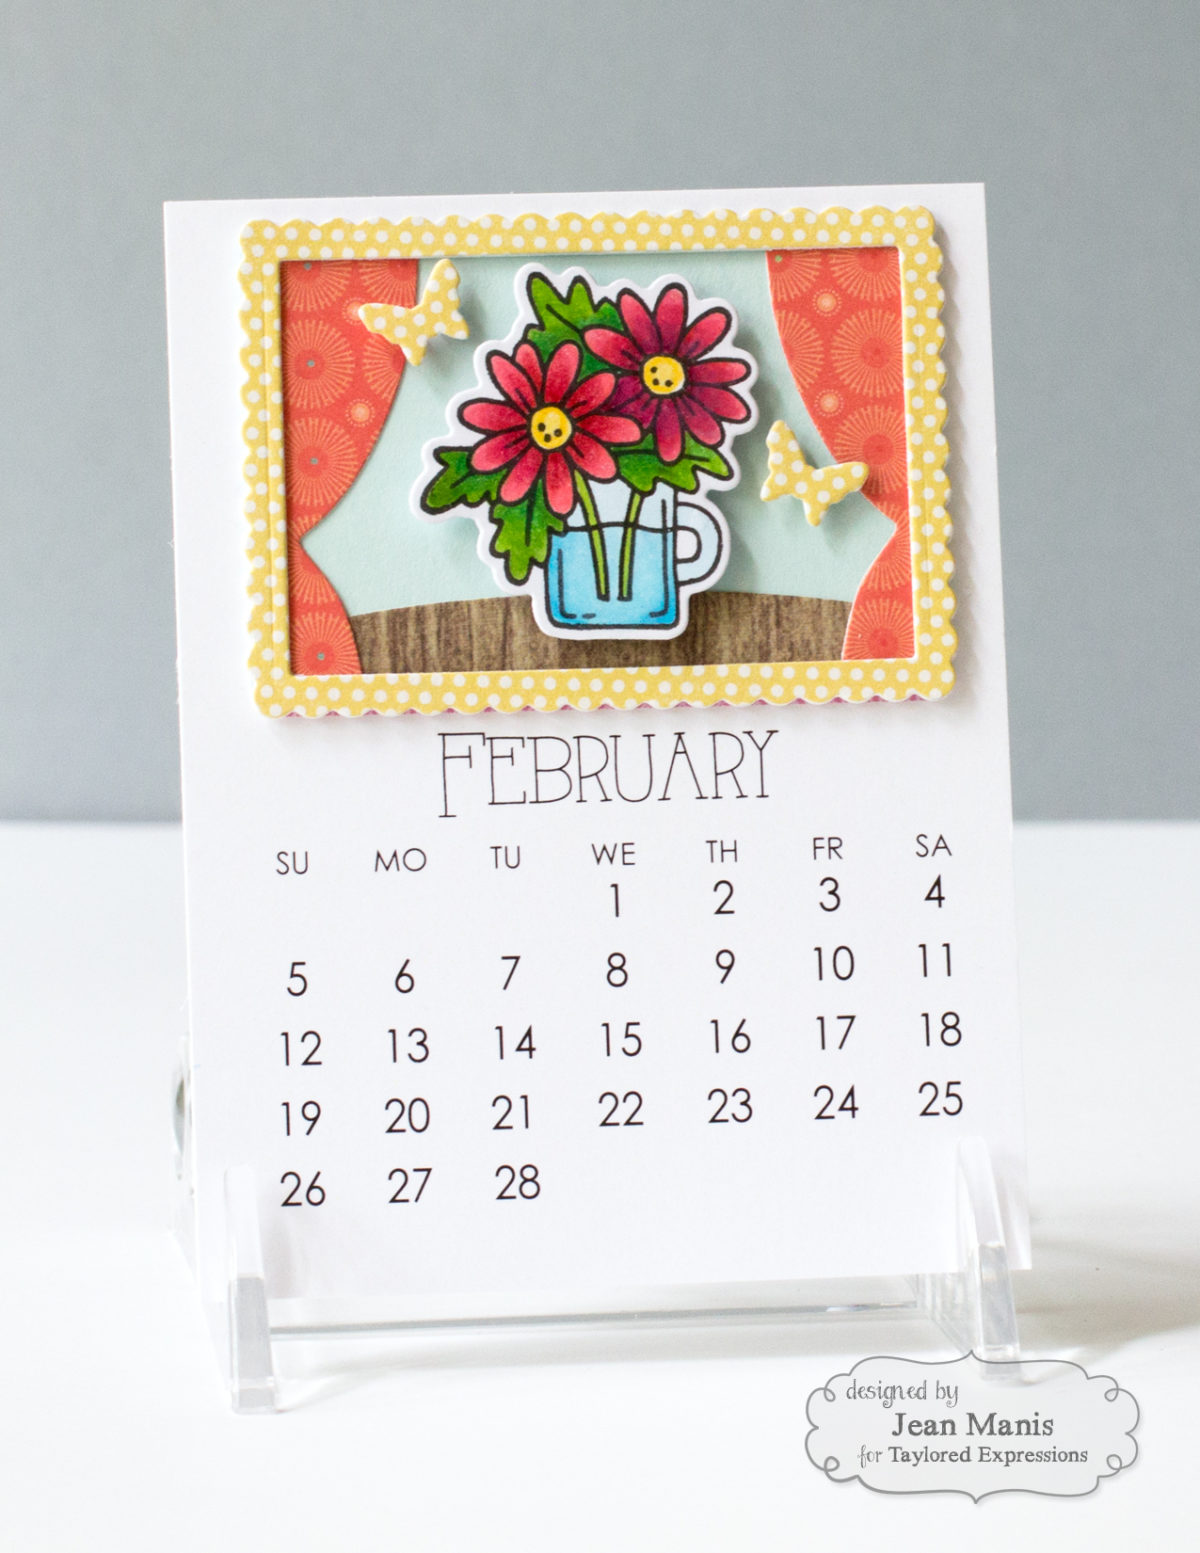 Taylored Expressions – February 2017 Calendar